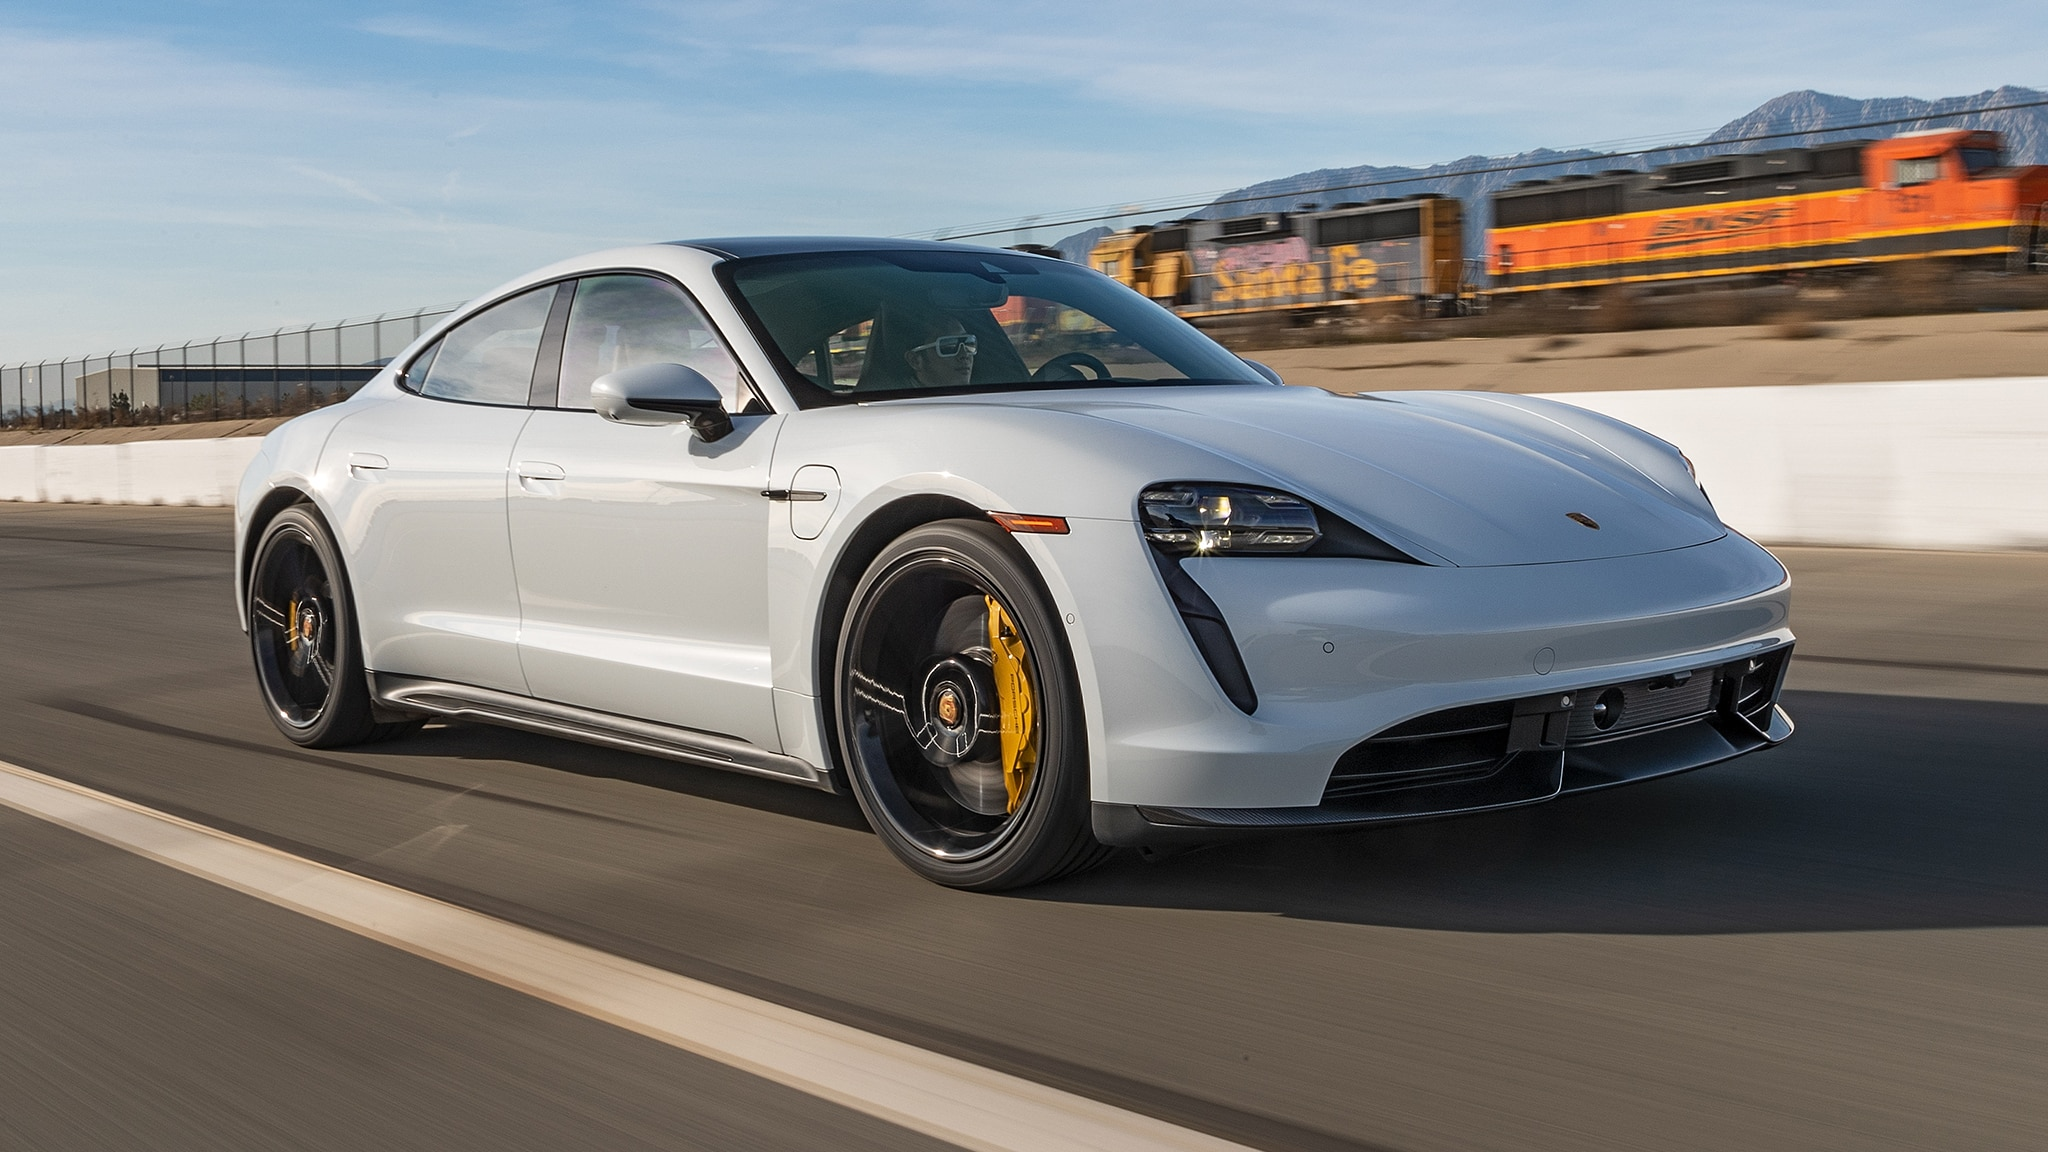 2020 Porsche Taycan Turbo S First Test Review Technology Shout